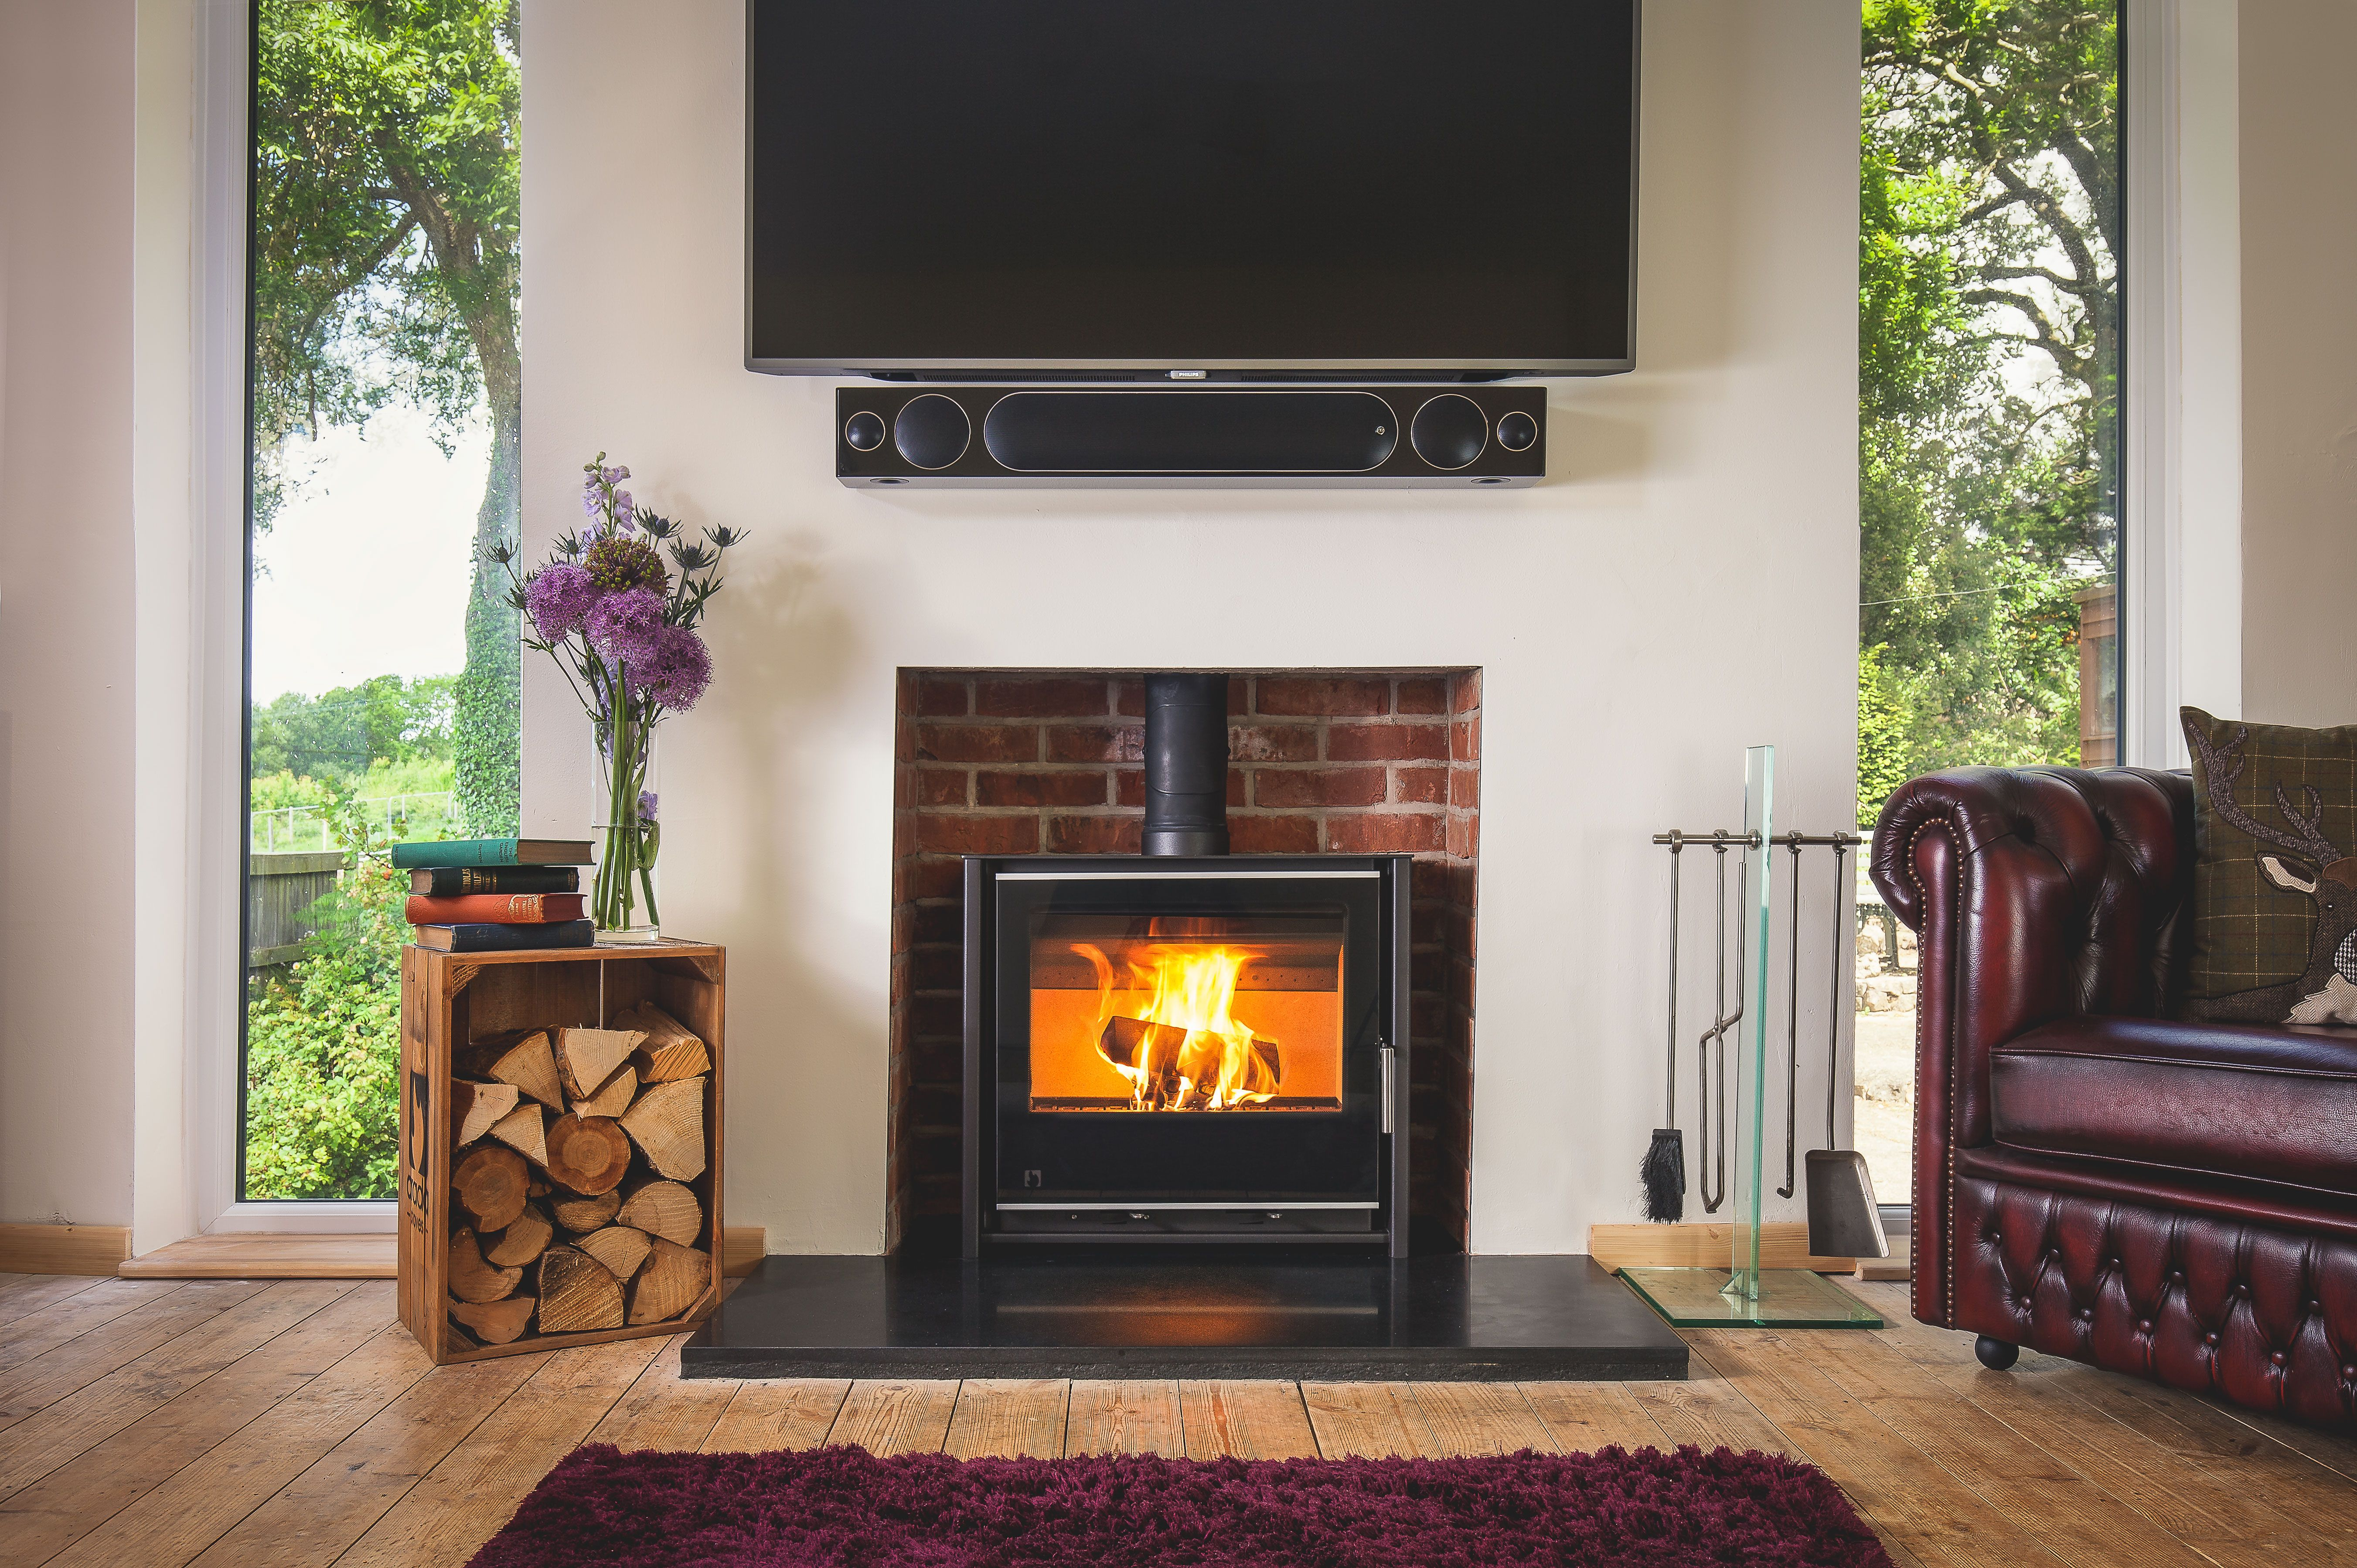 This sleek 4.9kW wood burning stove suitable for